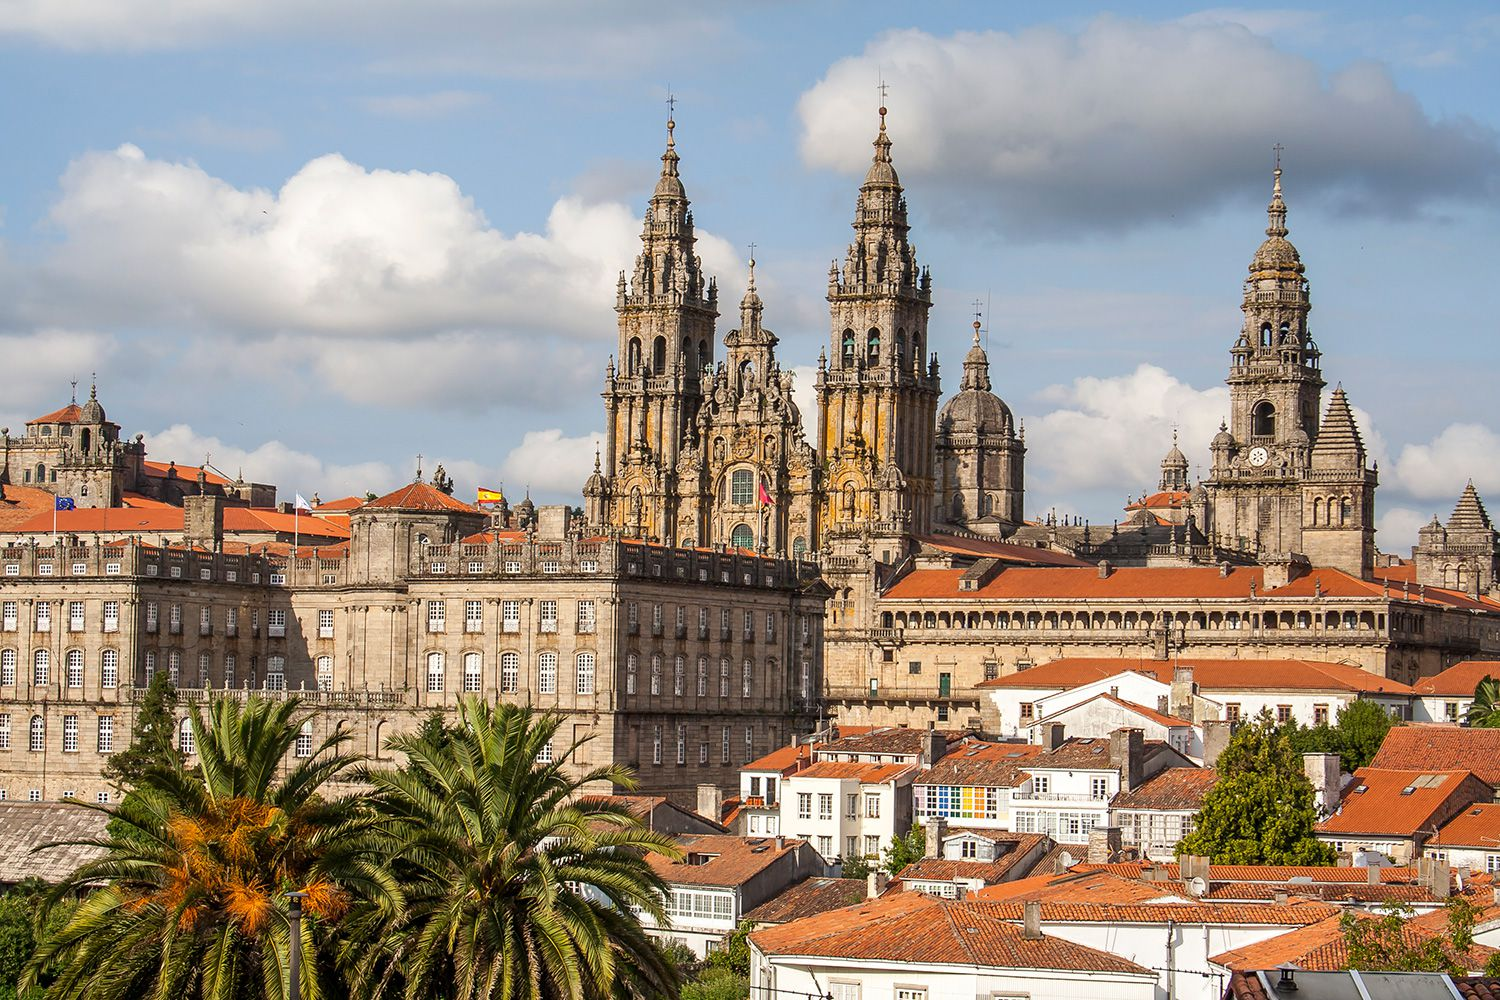 THE WAY TO SANTIAGO DE COMPOSTELA: TRAVEL TIPS